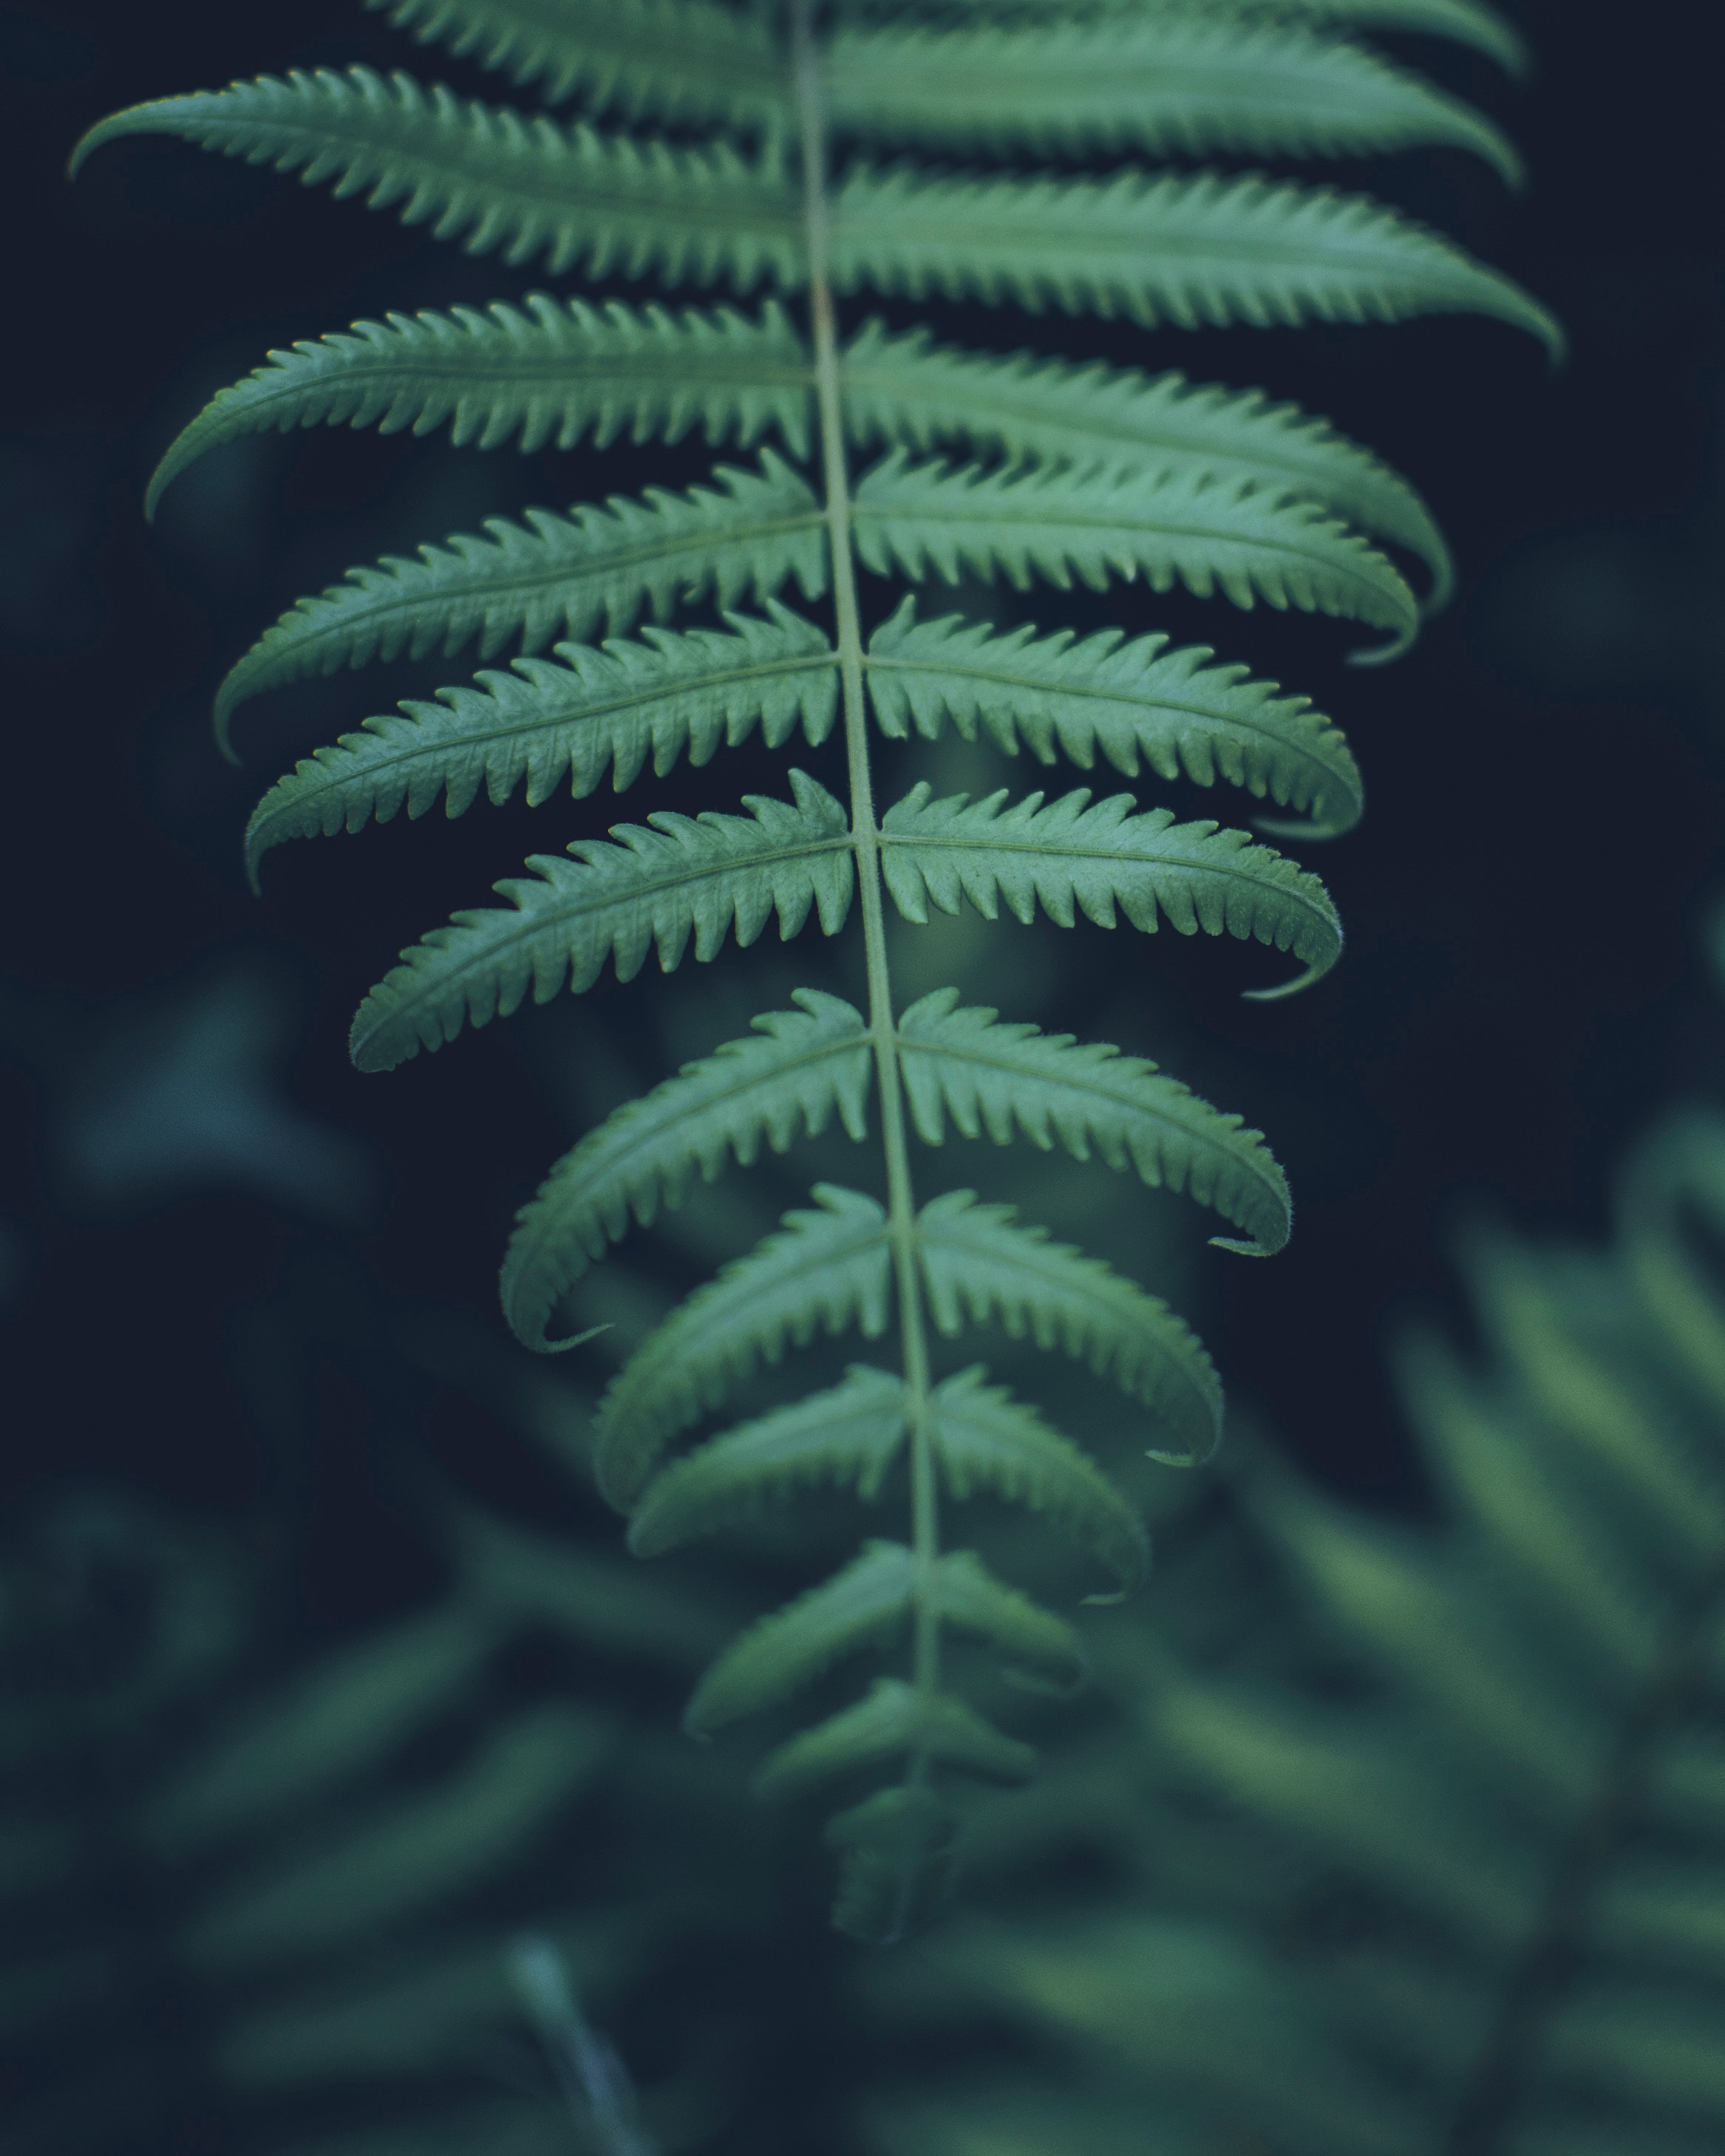 close-up-fern-fern-leaves-1721554.jpg